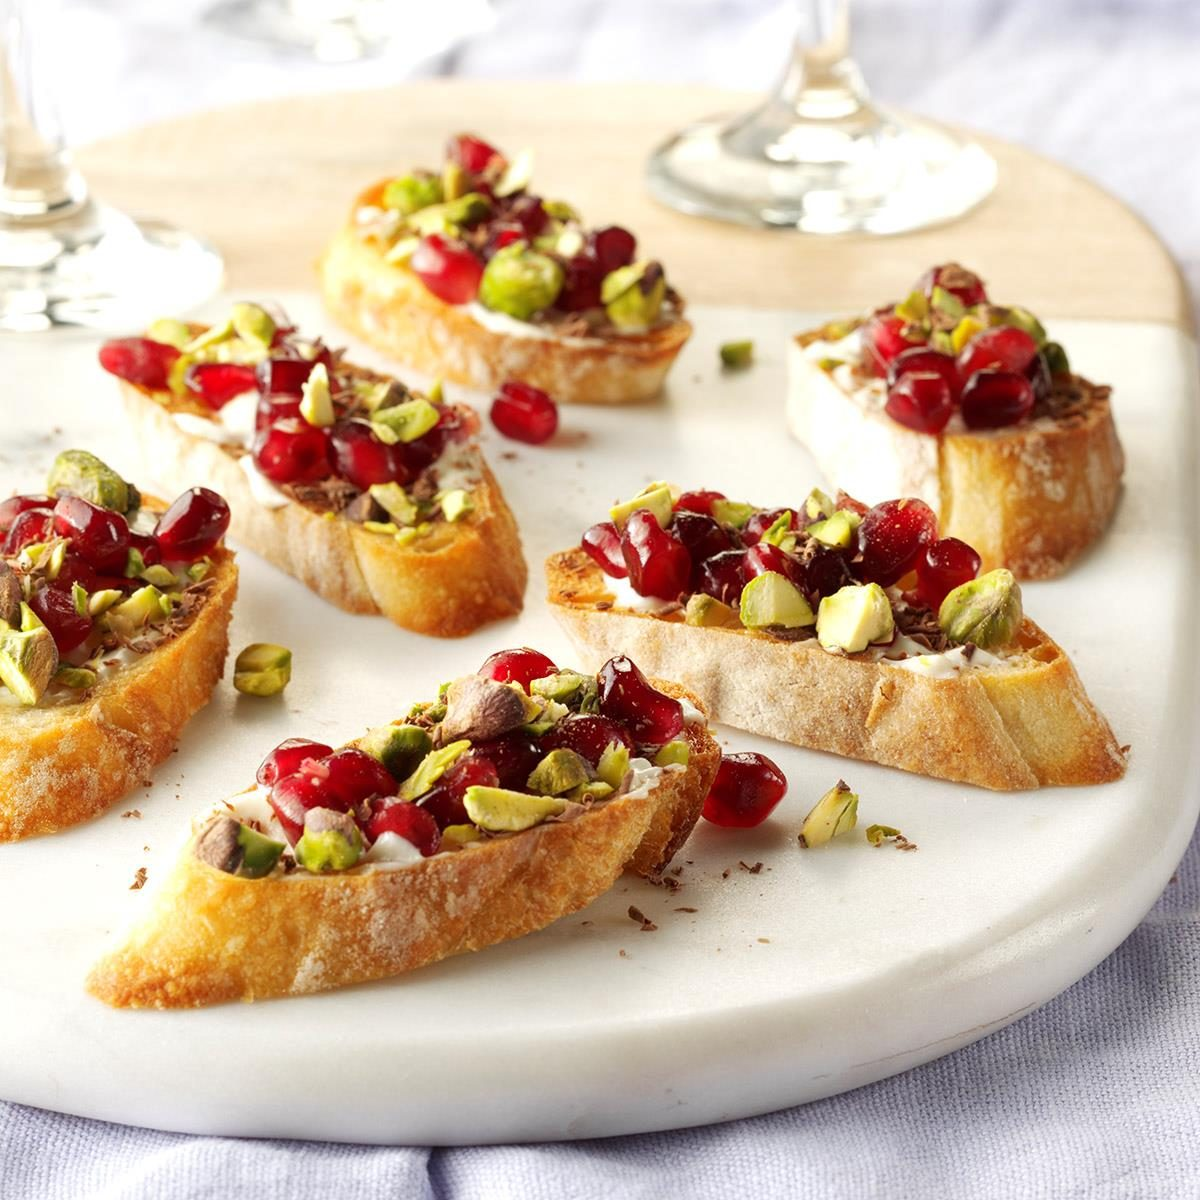 40 Easy Christmas Appetizer Ideas Perfect for a Holiday Party  Taste of Home